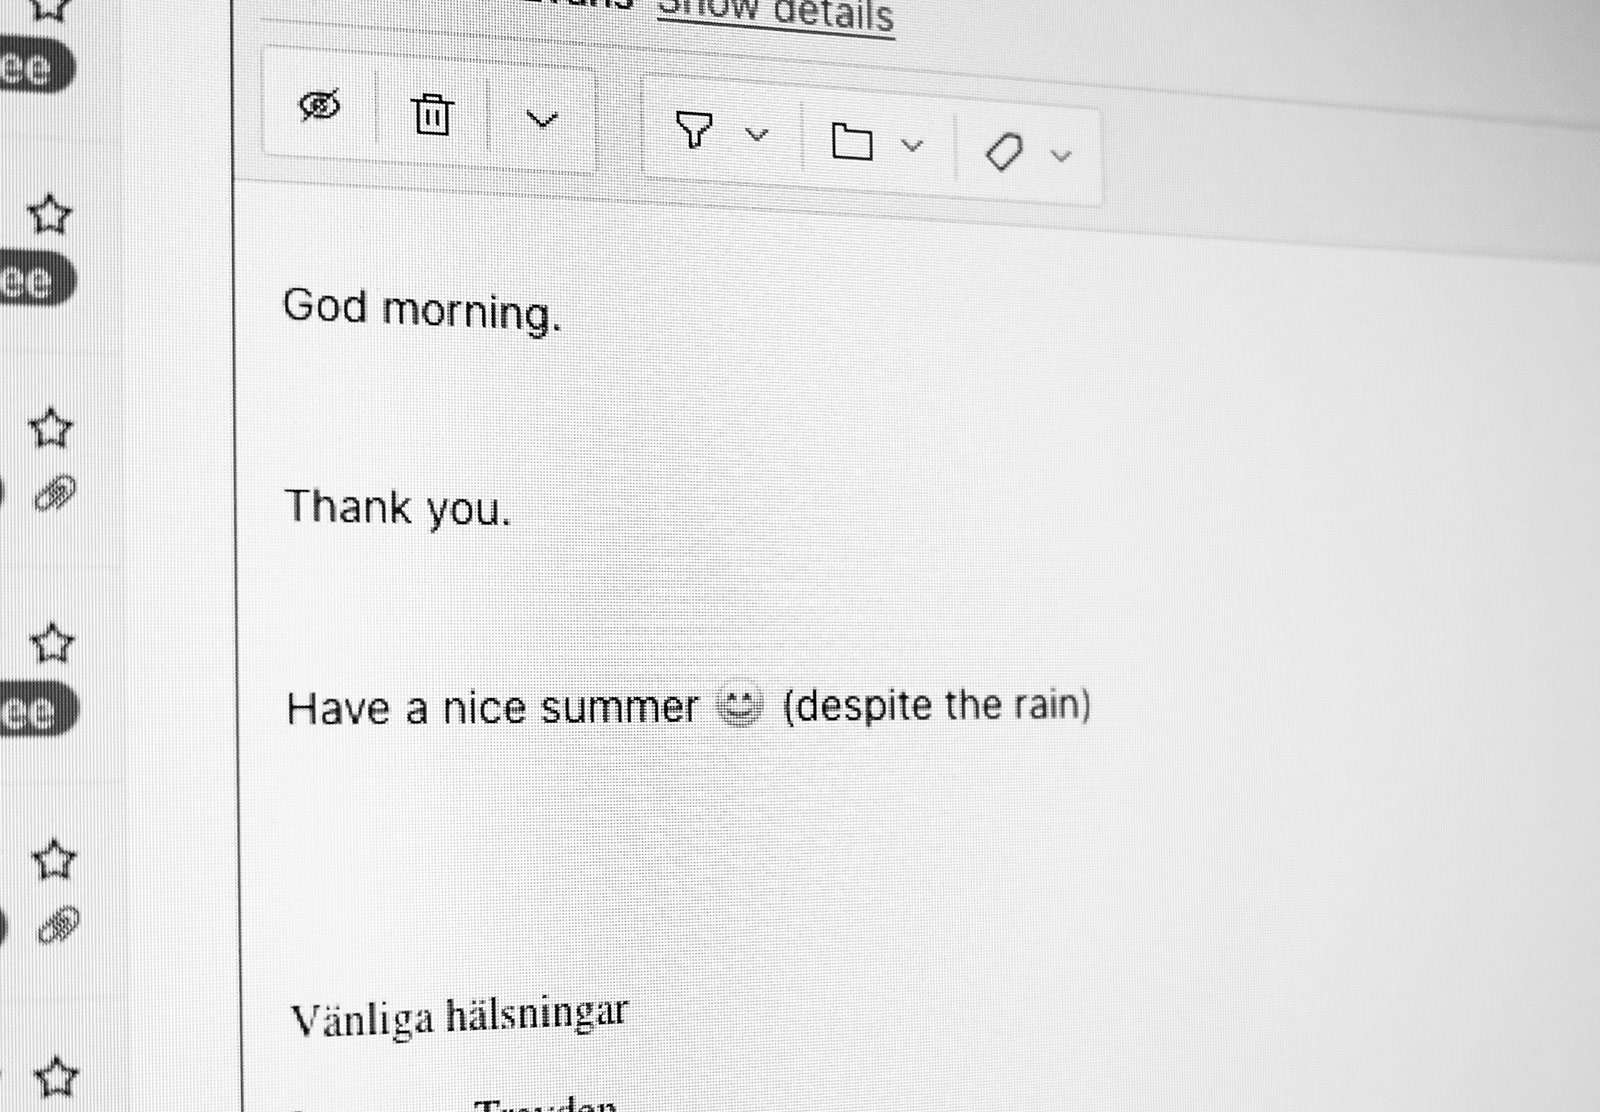 Email text